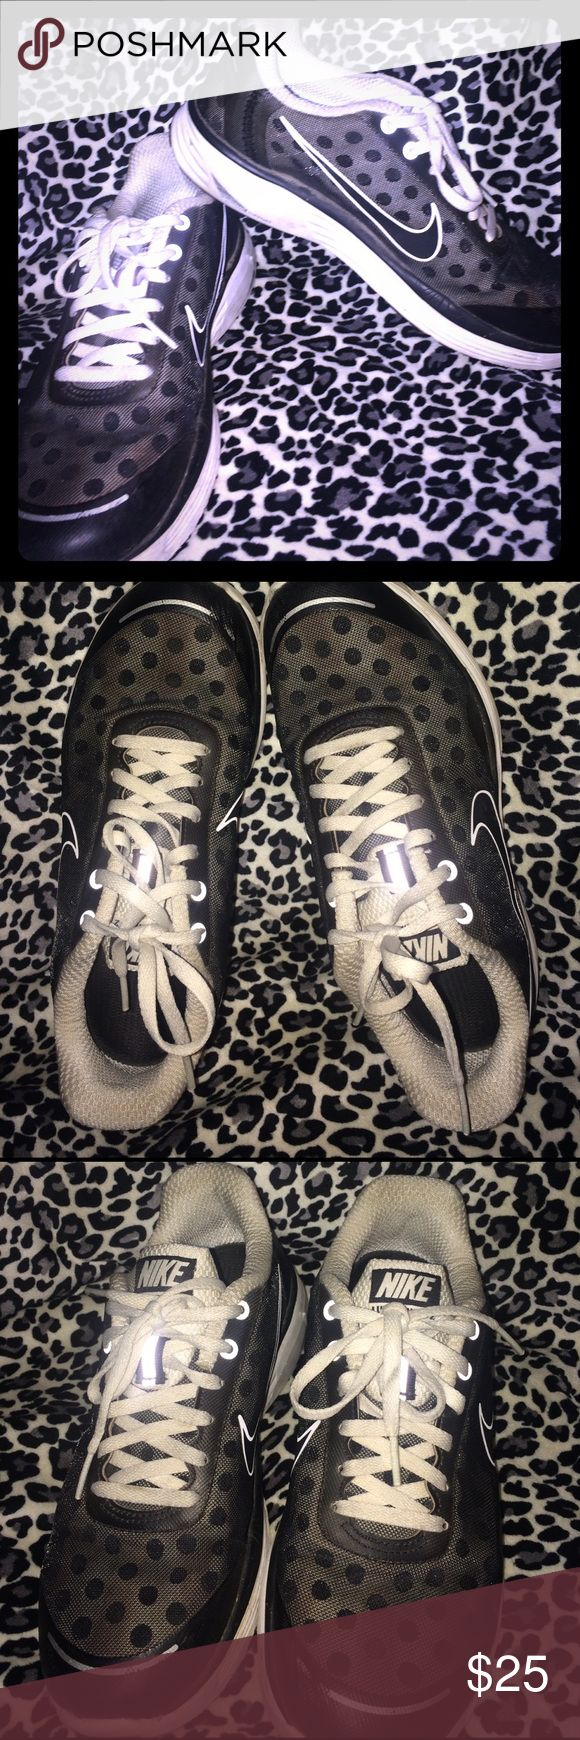 Nike Lunar Swift 2 Black White polka Dots! Super Cute Nikes with polka Dots😍good used condition! Sz 7! Nike Shoes Athletic Shoes